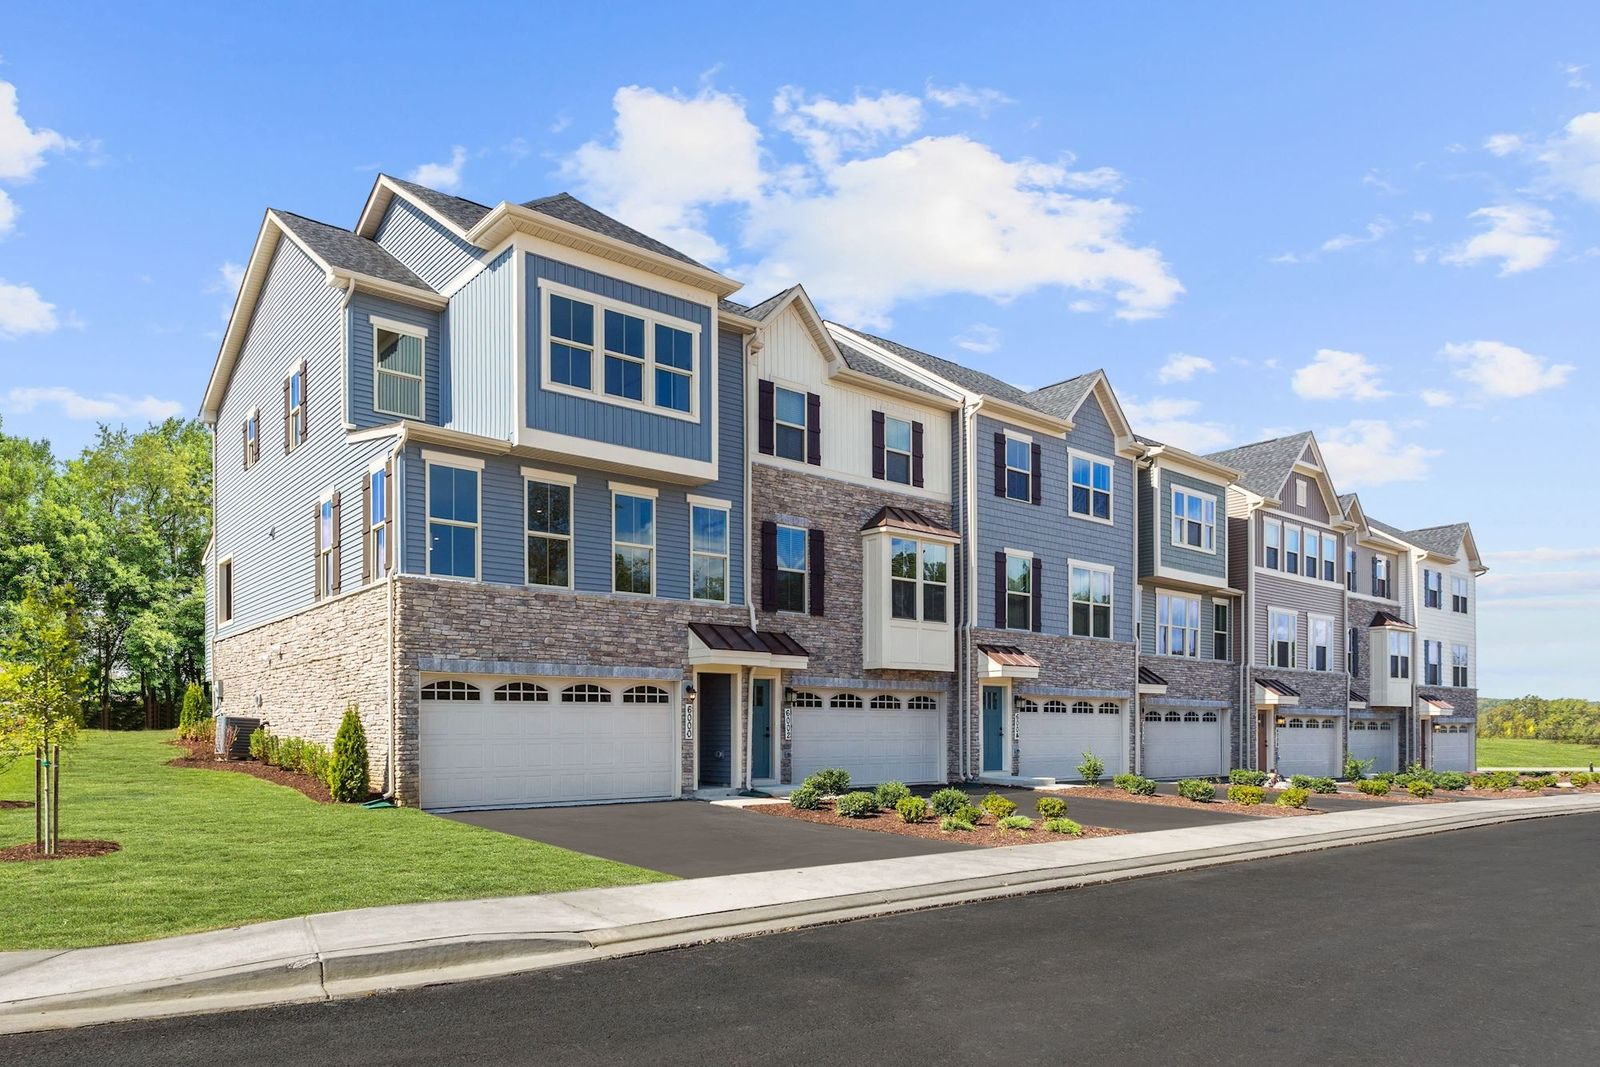 Welcome to Laurel Place:A private enclave of only 36 new luxury townhomes just 2 miles from the Upper St. Clair rec center and I-79. From the mid $300s.Click here to join the VIP List for updates and VIP benefits!